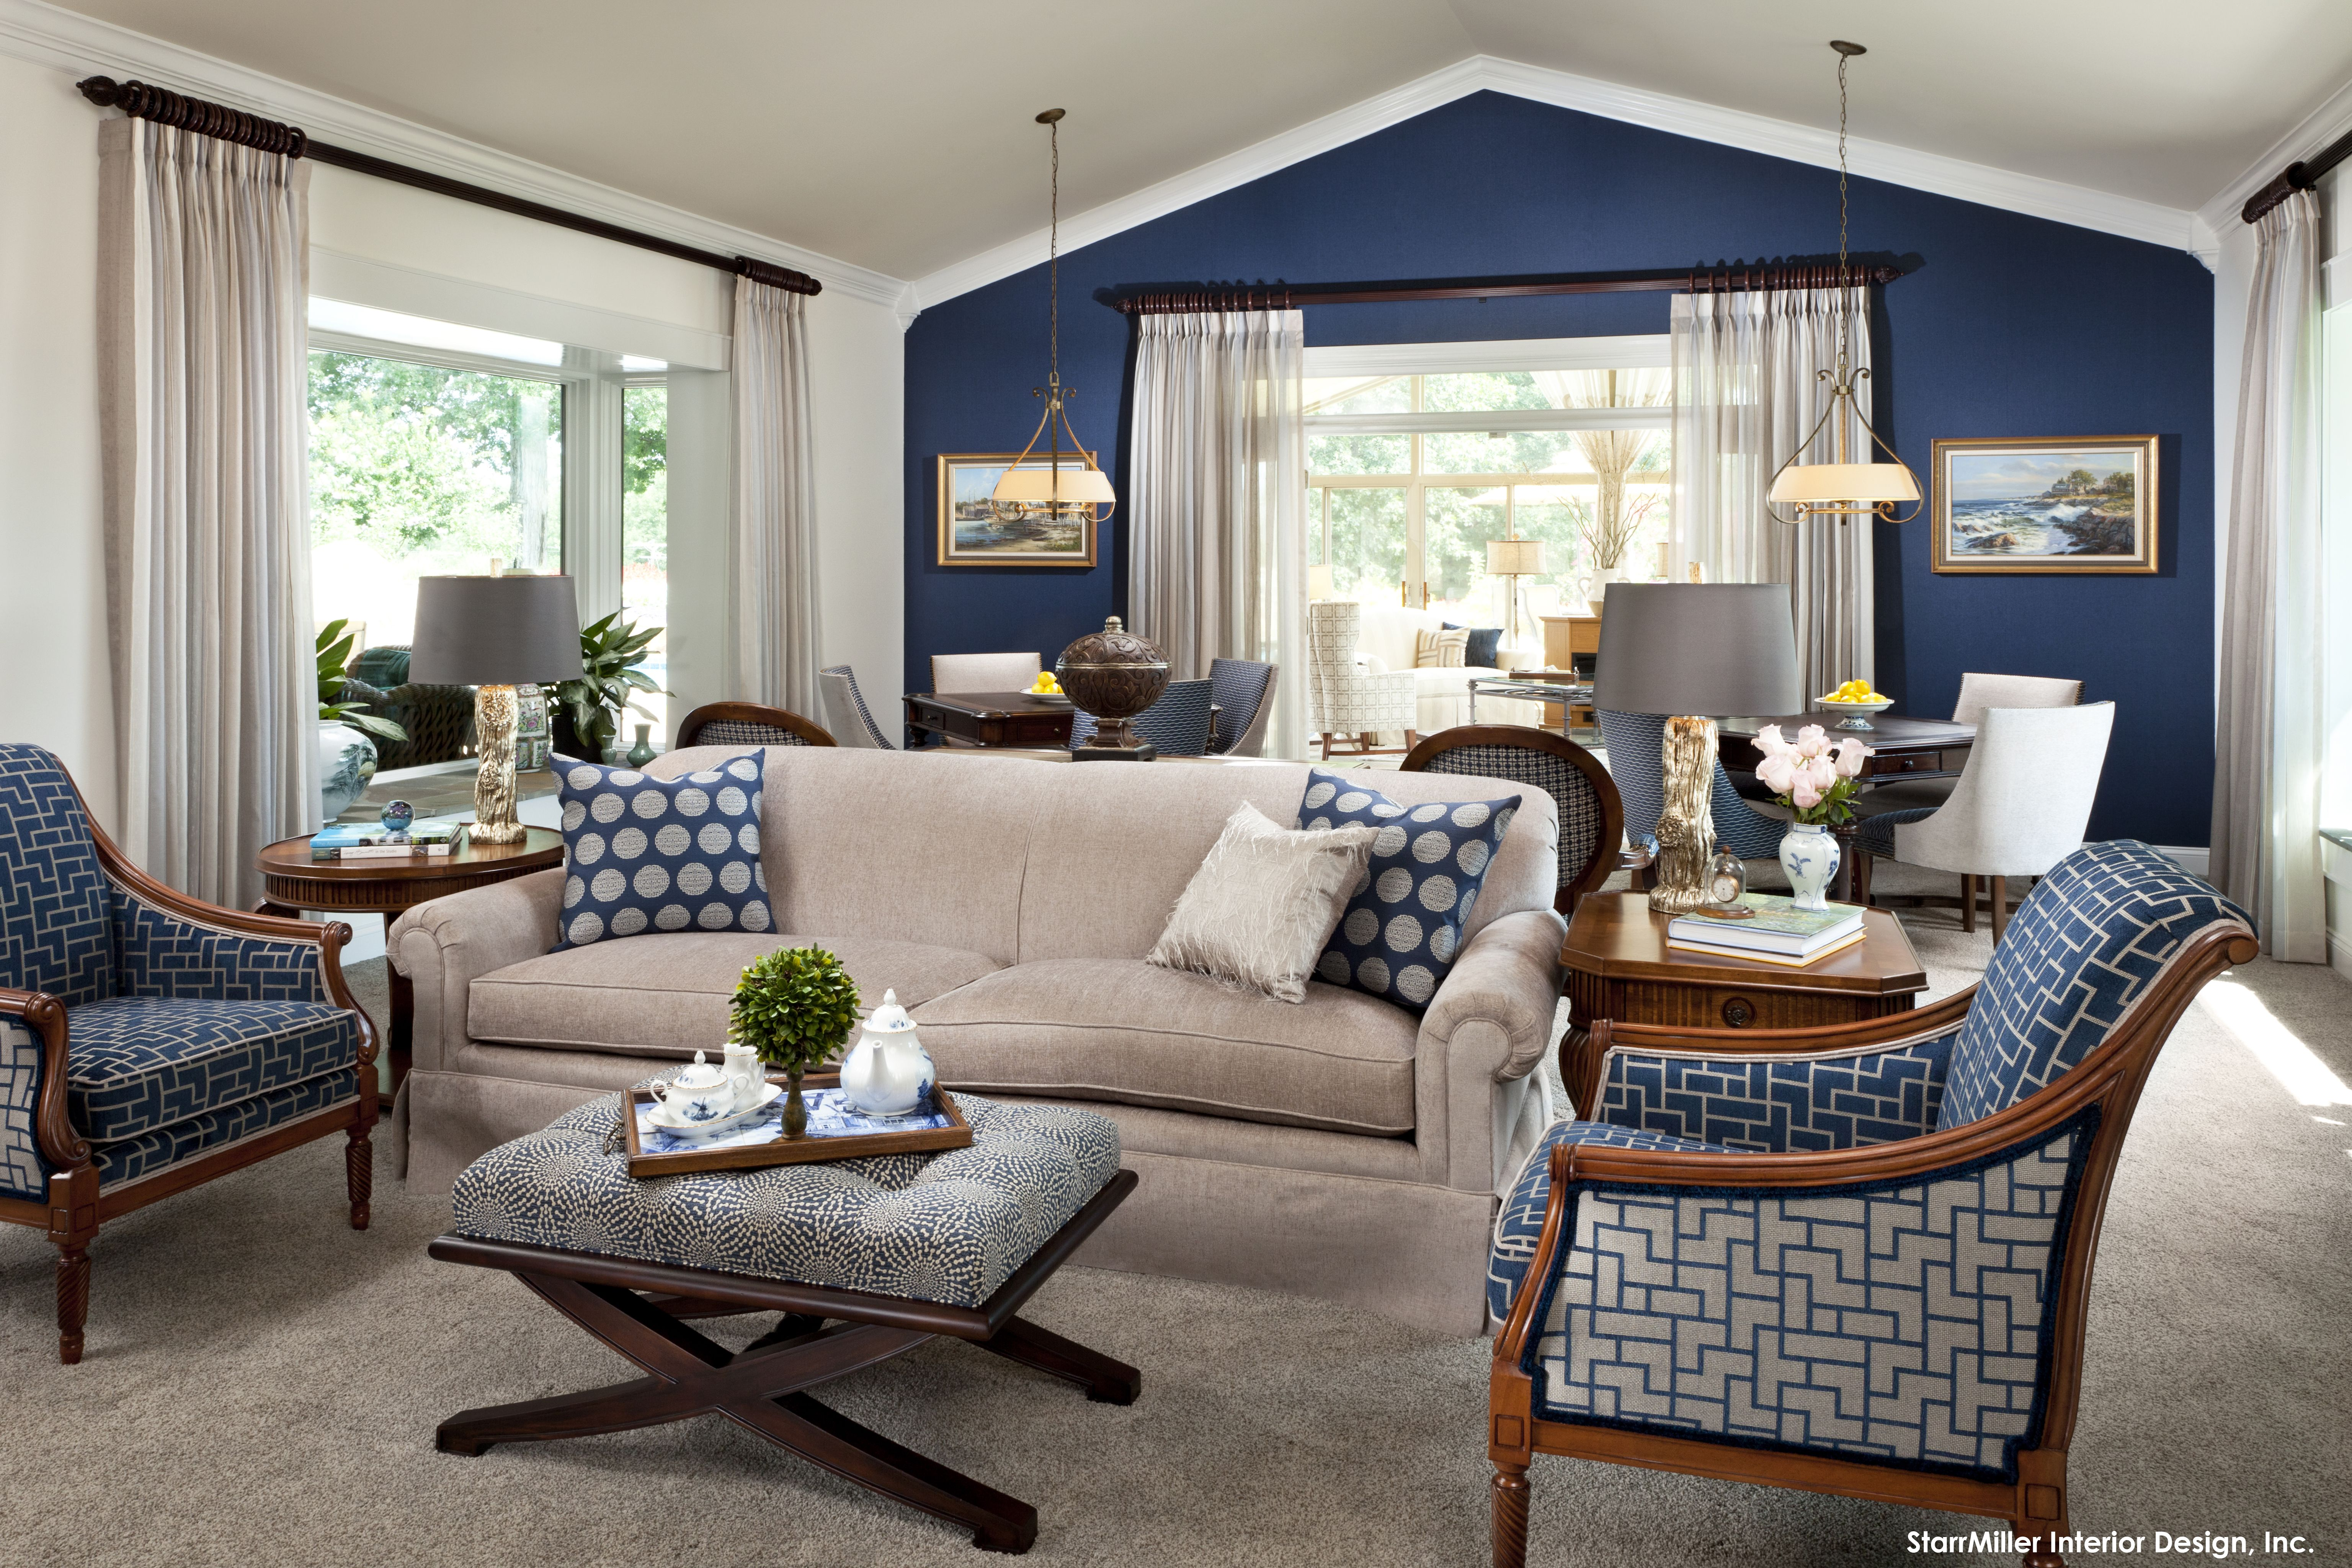 15 Lovely Living Room Designs With Blue Accents Blue Accent Wall